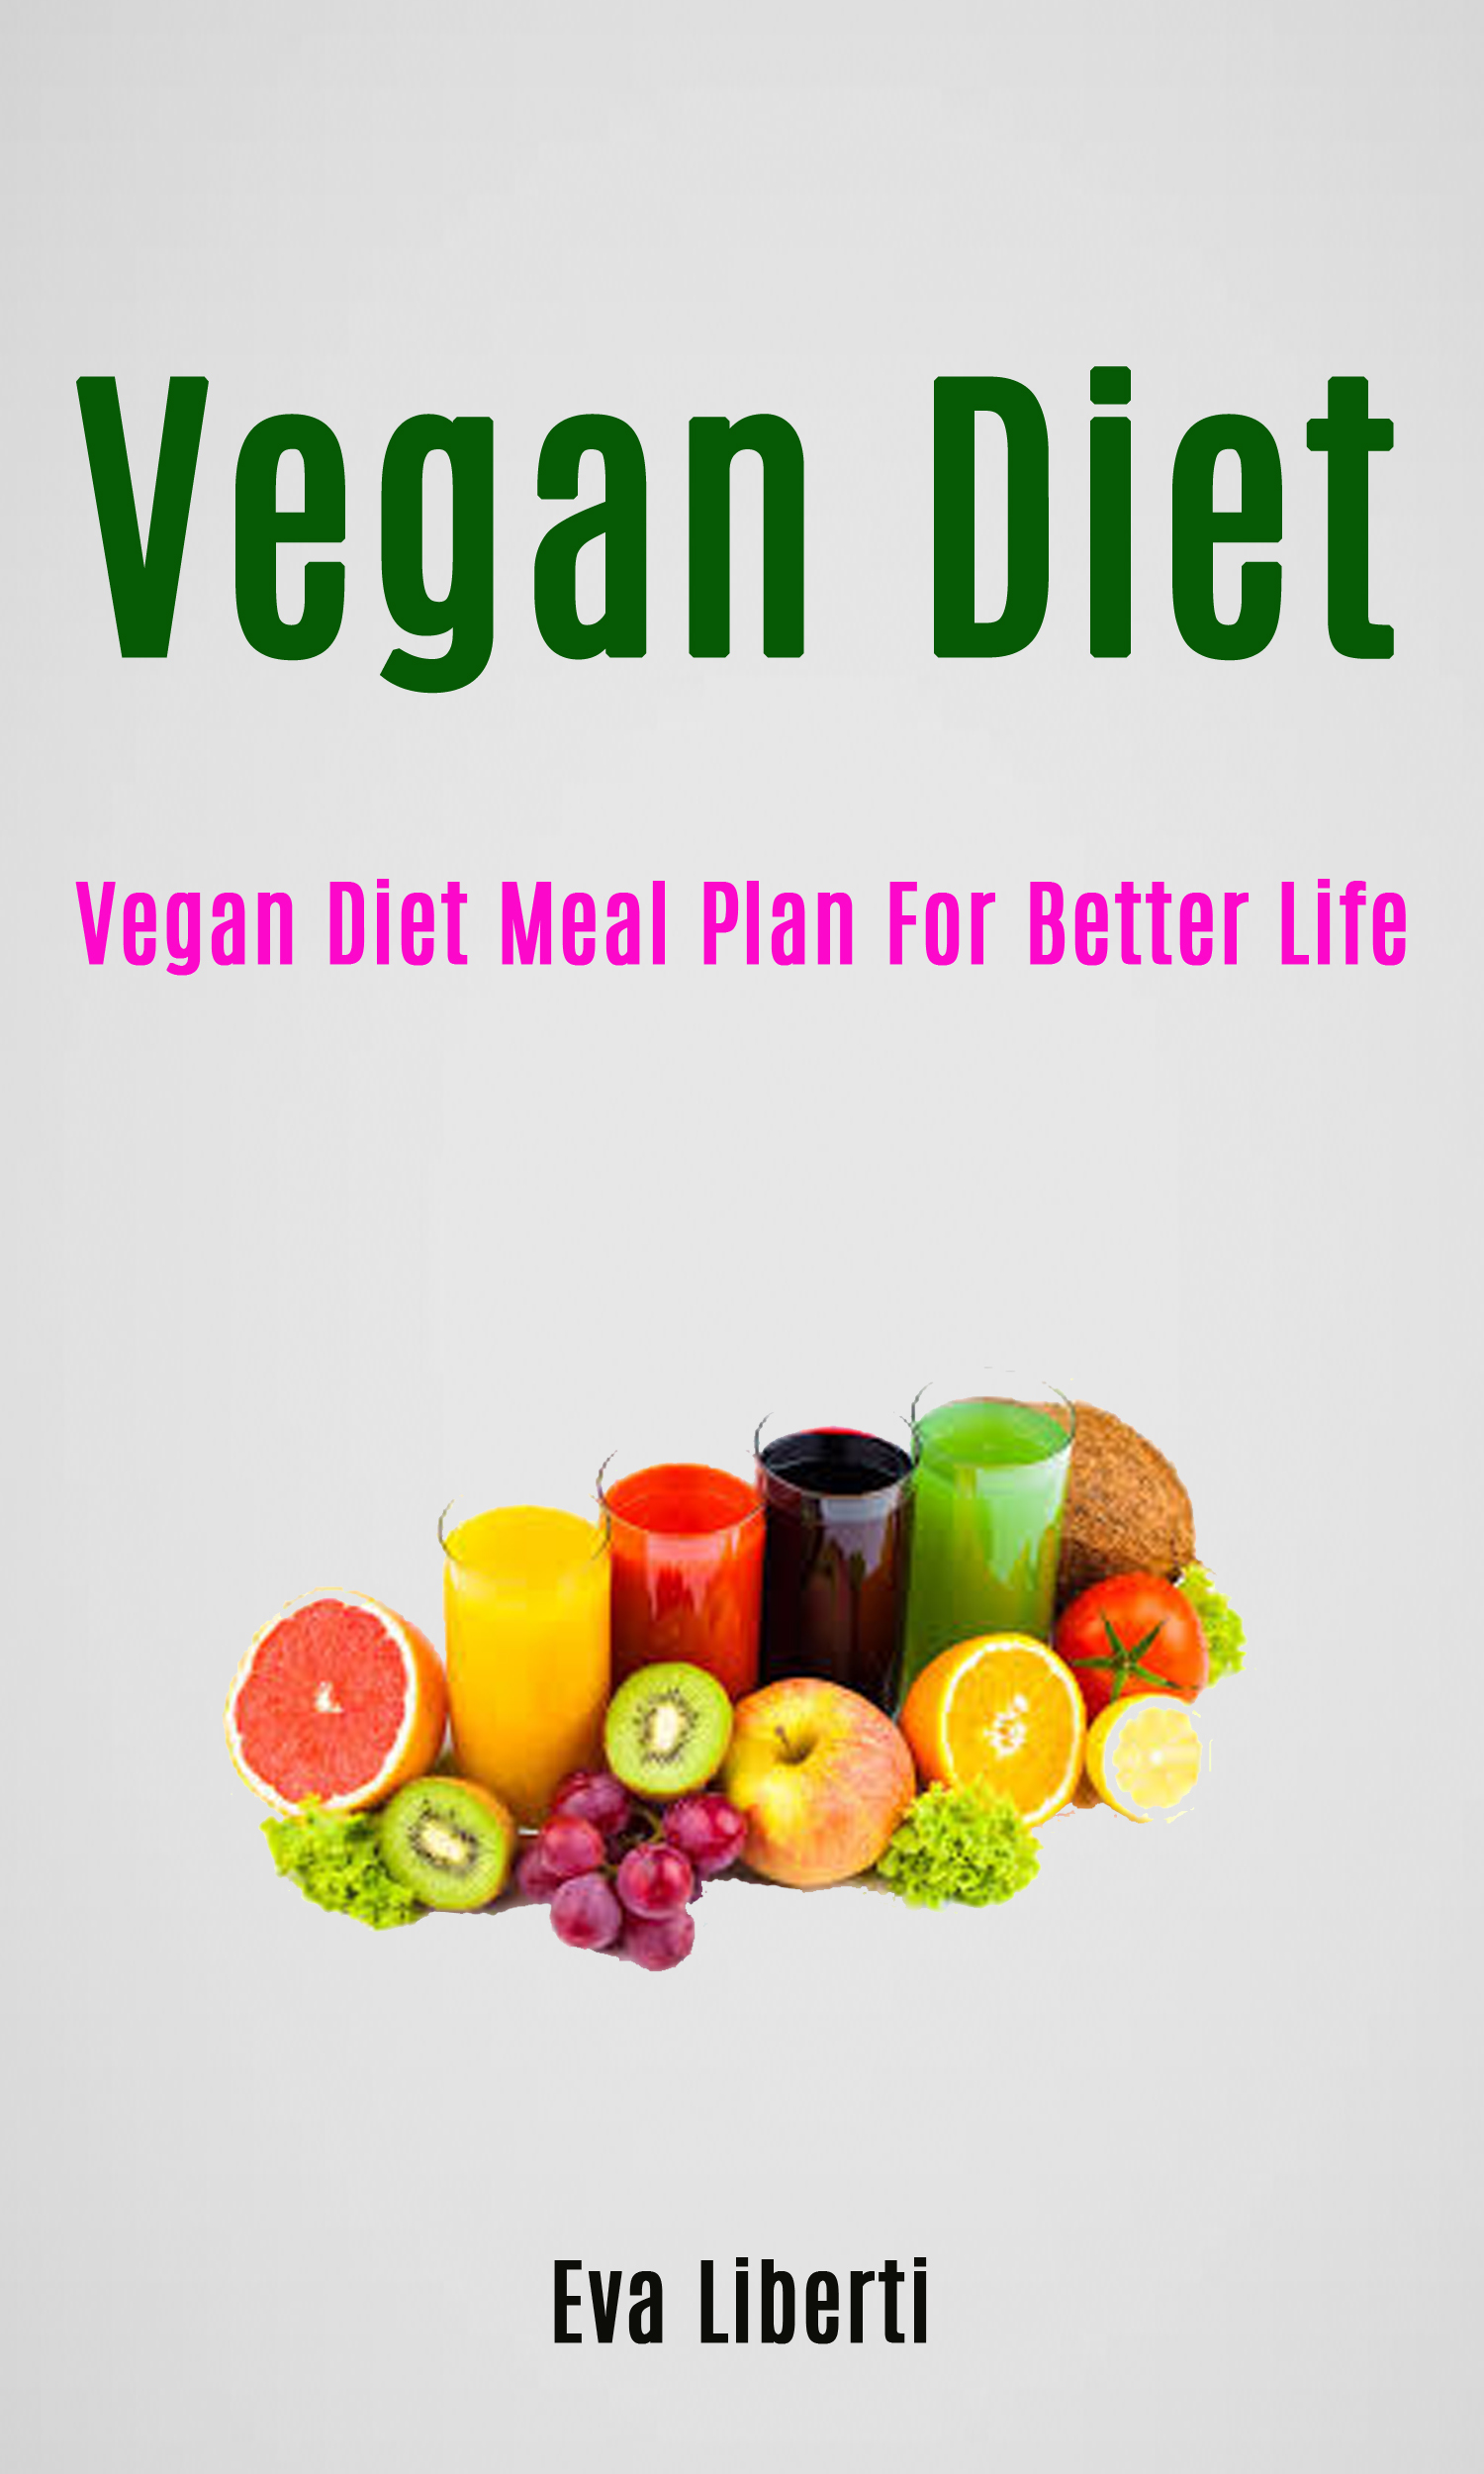 Vegan diet: vegan diet meal plan for better life